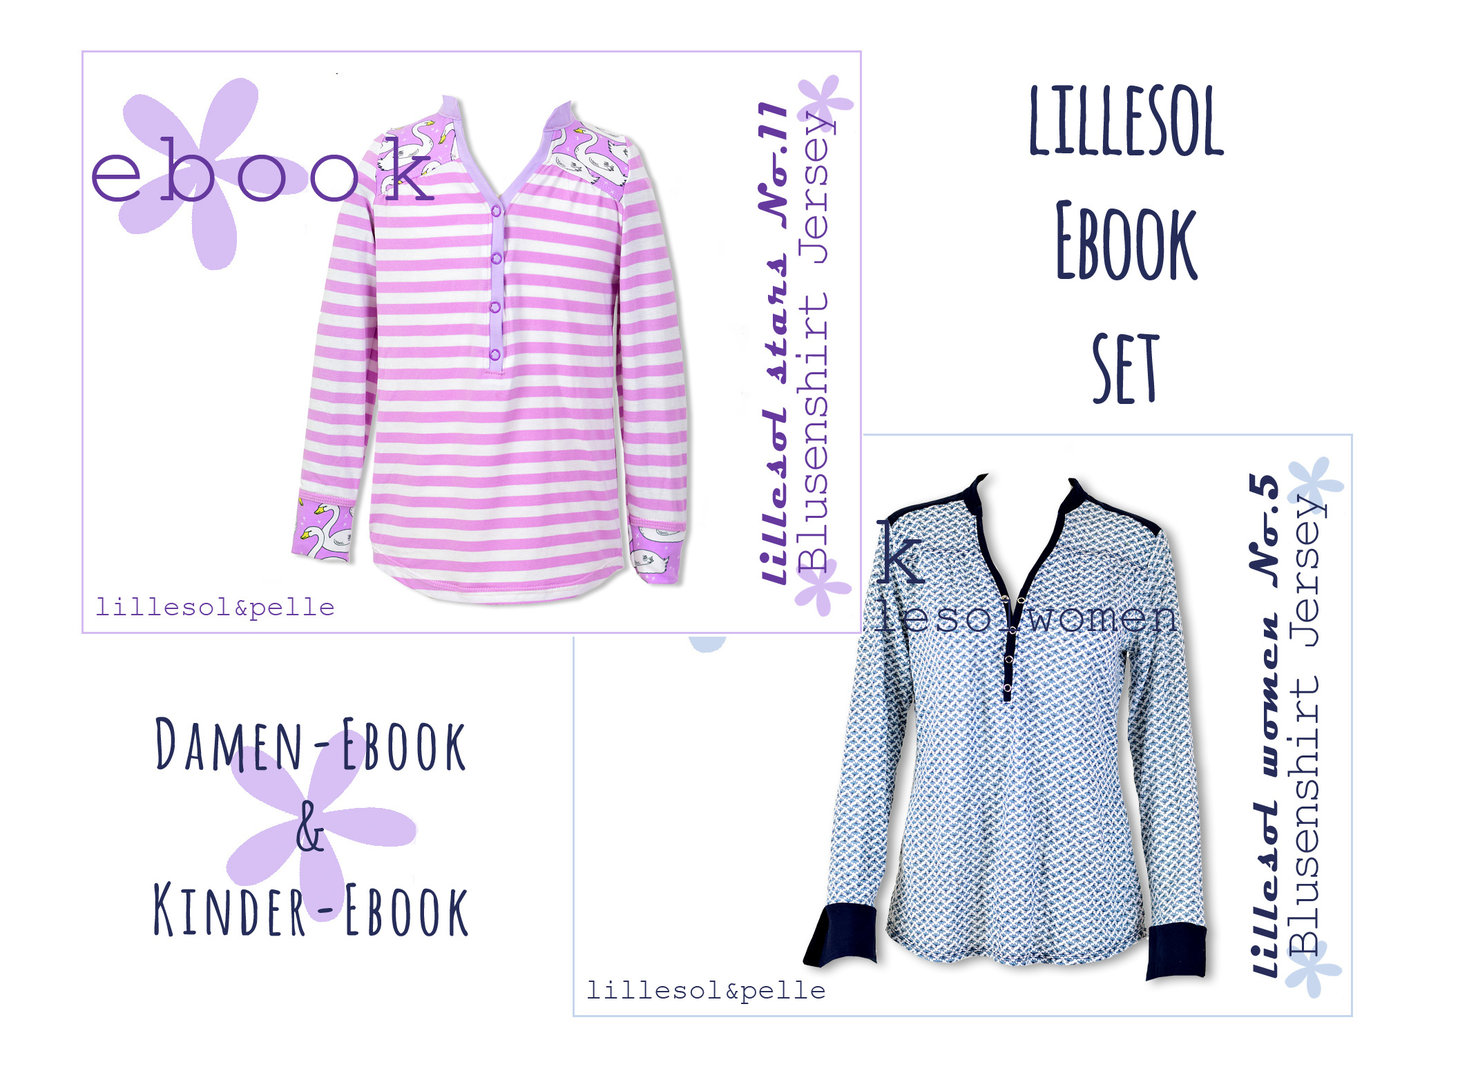 lillesol ebook set stars No.11 und women No.5